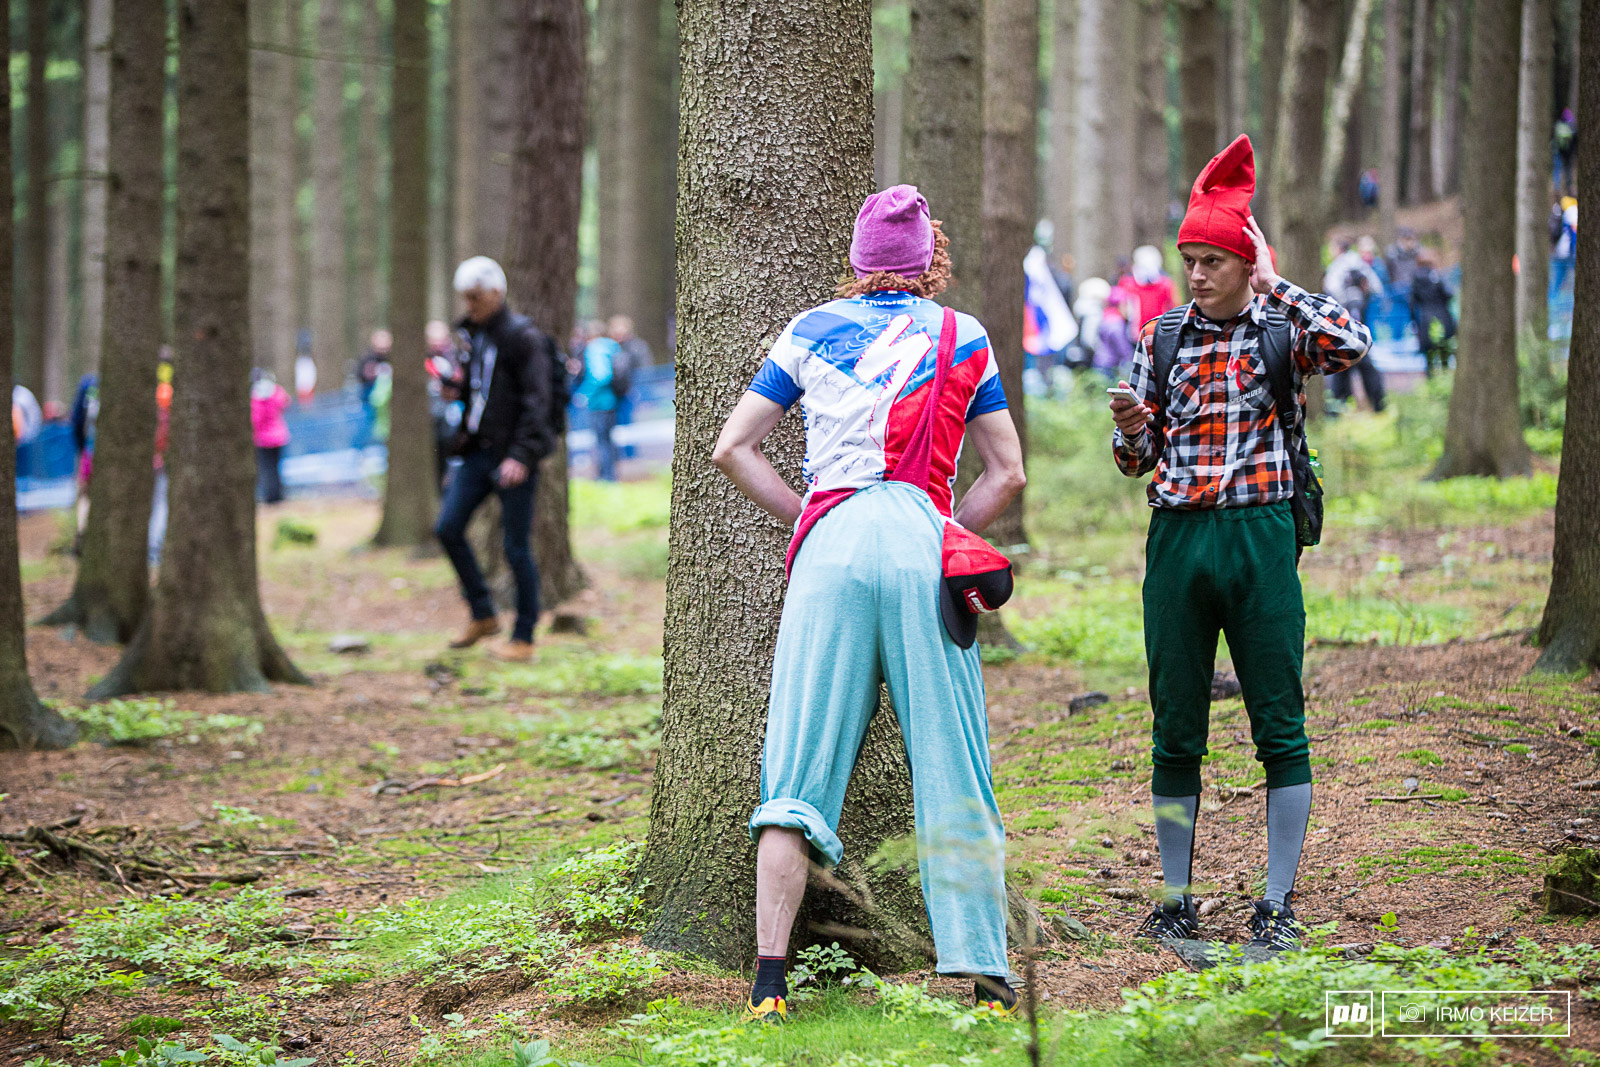 Czechs love beer. And all sorts of booze for that matter. Sanitary stops all over the forest.